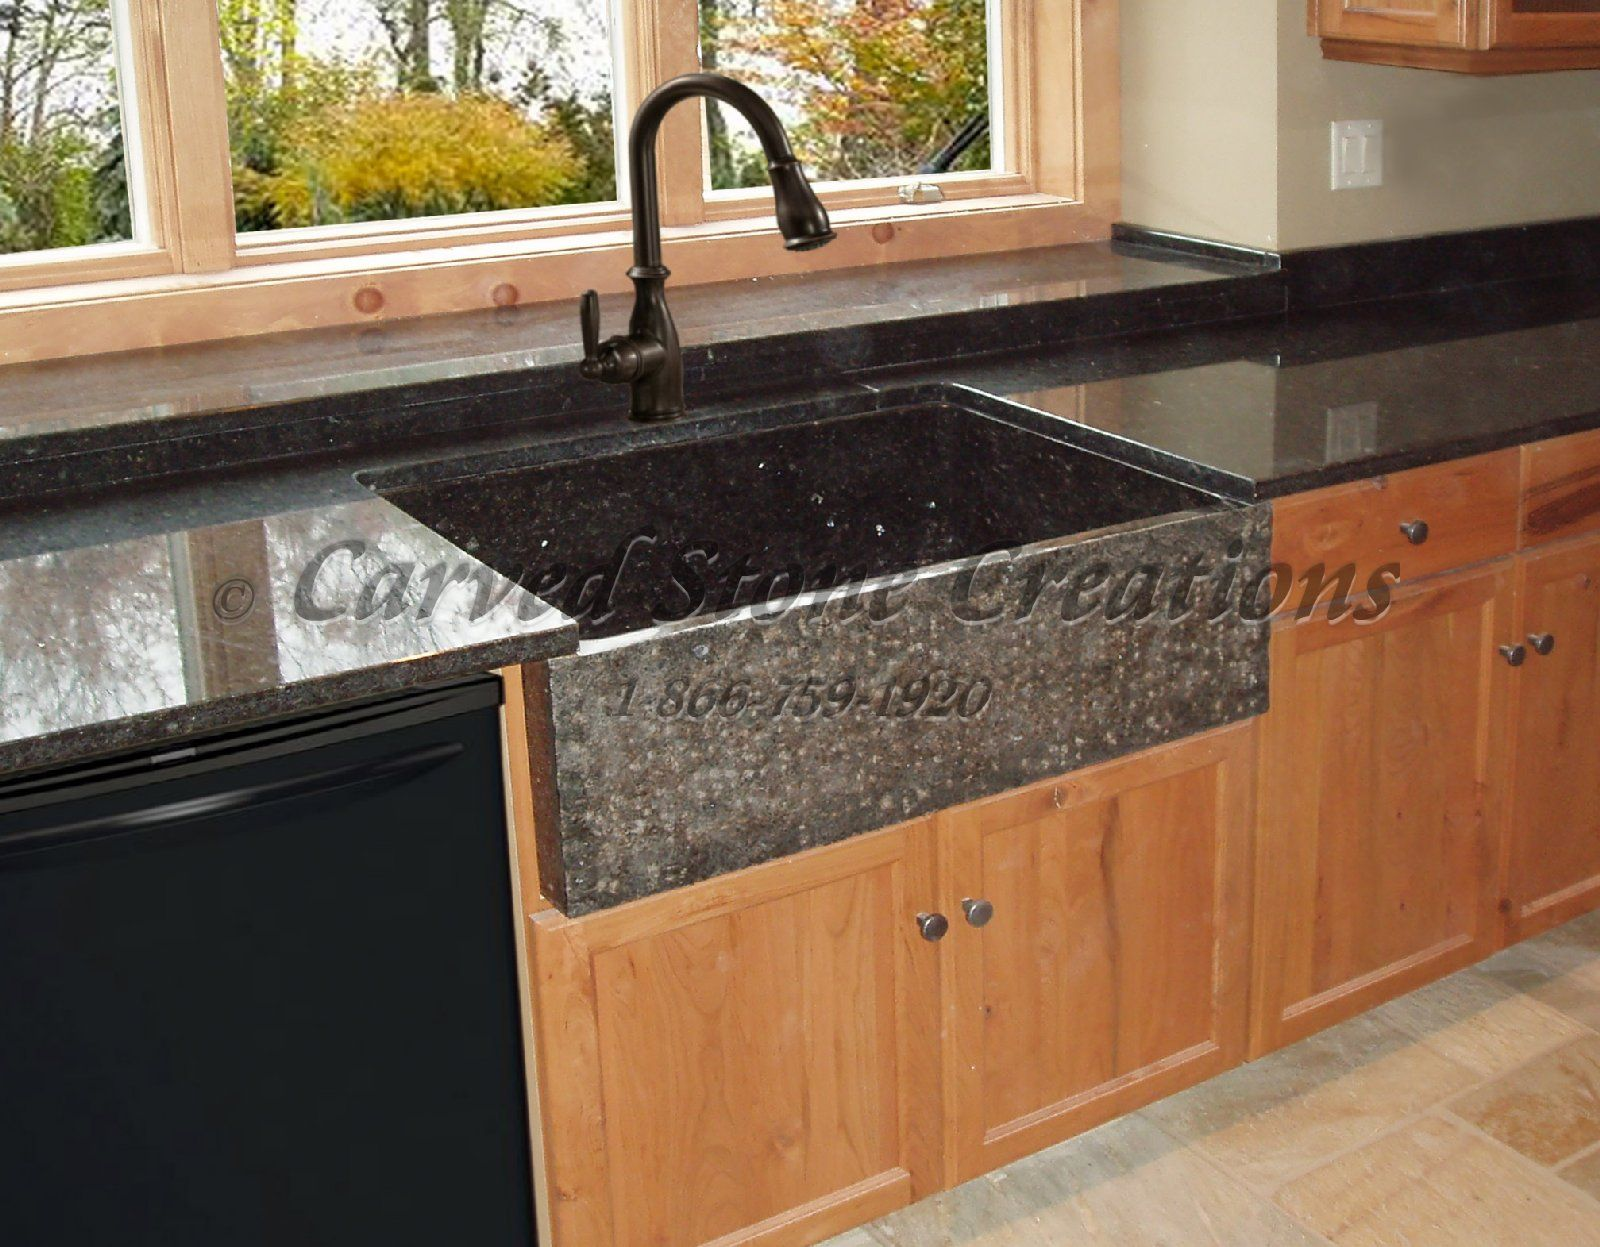 design sinks kitchen laundry farmhouse for sink room skirting inspirational mobile ideas with home